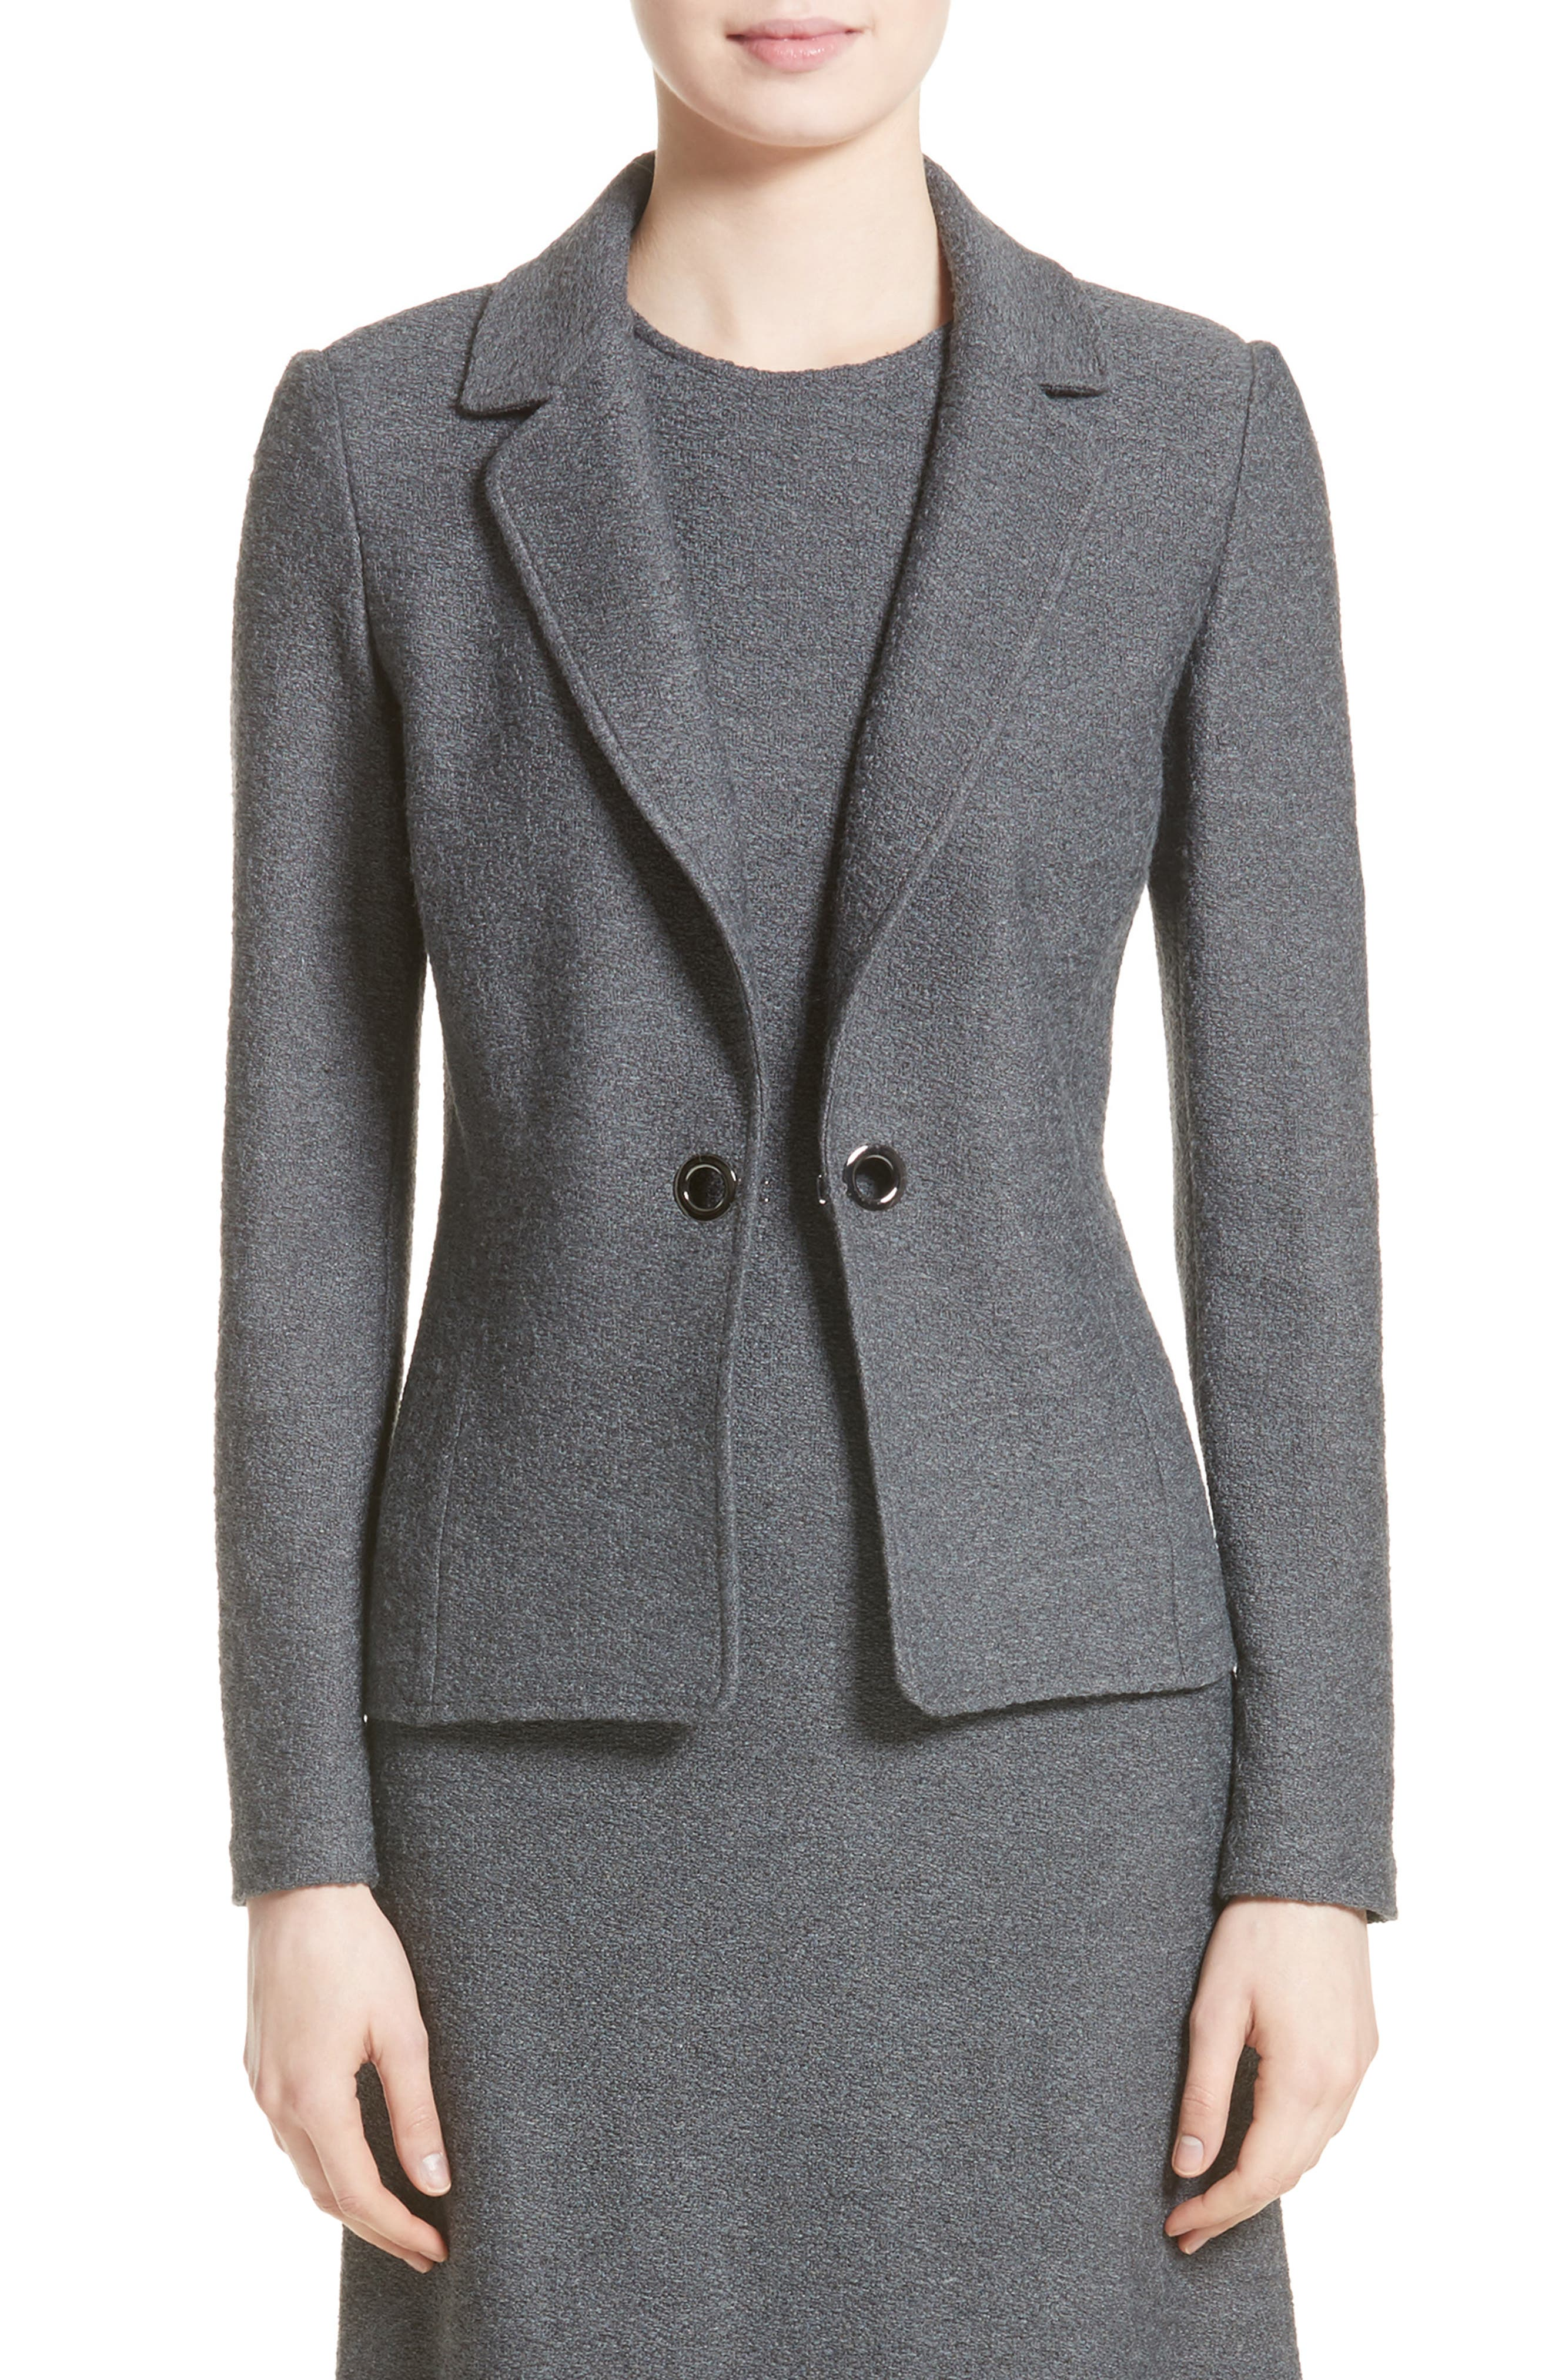 St. John Collection Clair Grommet Detail Knit Jacket